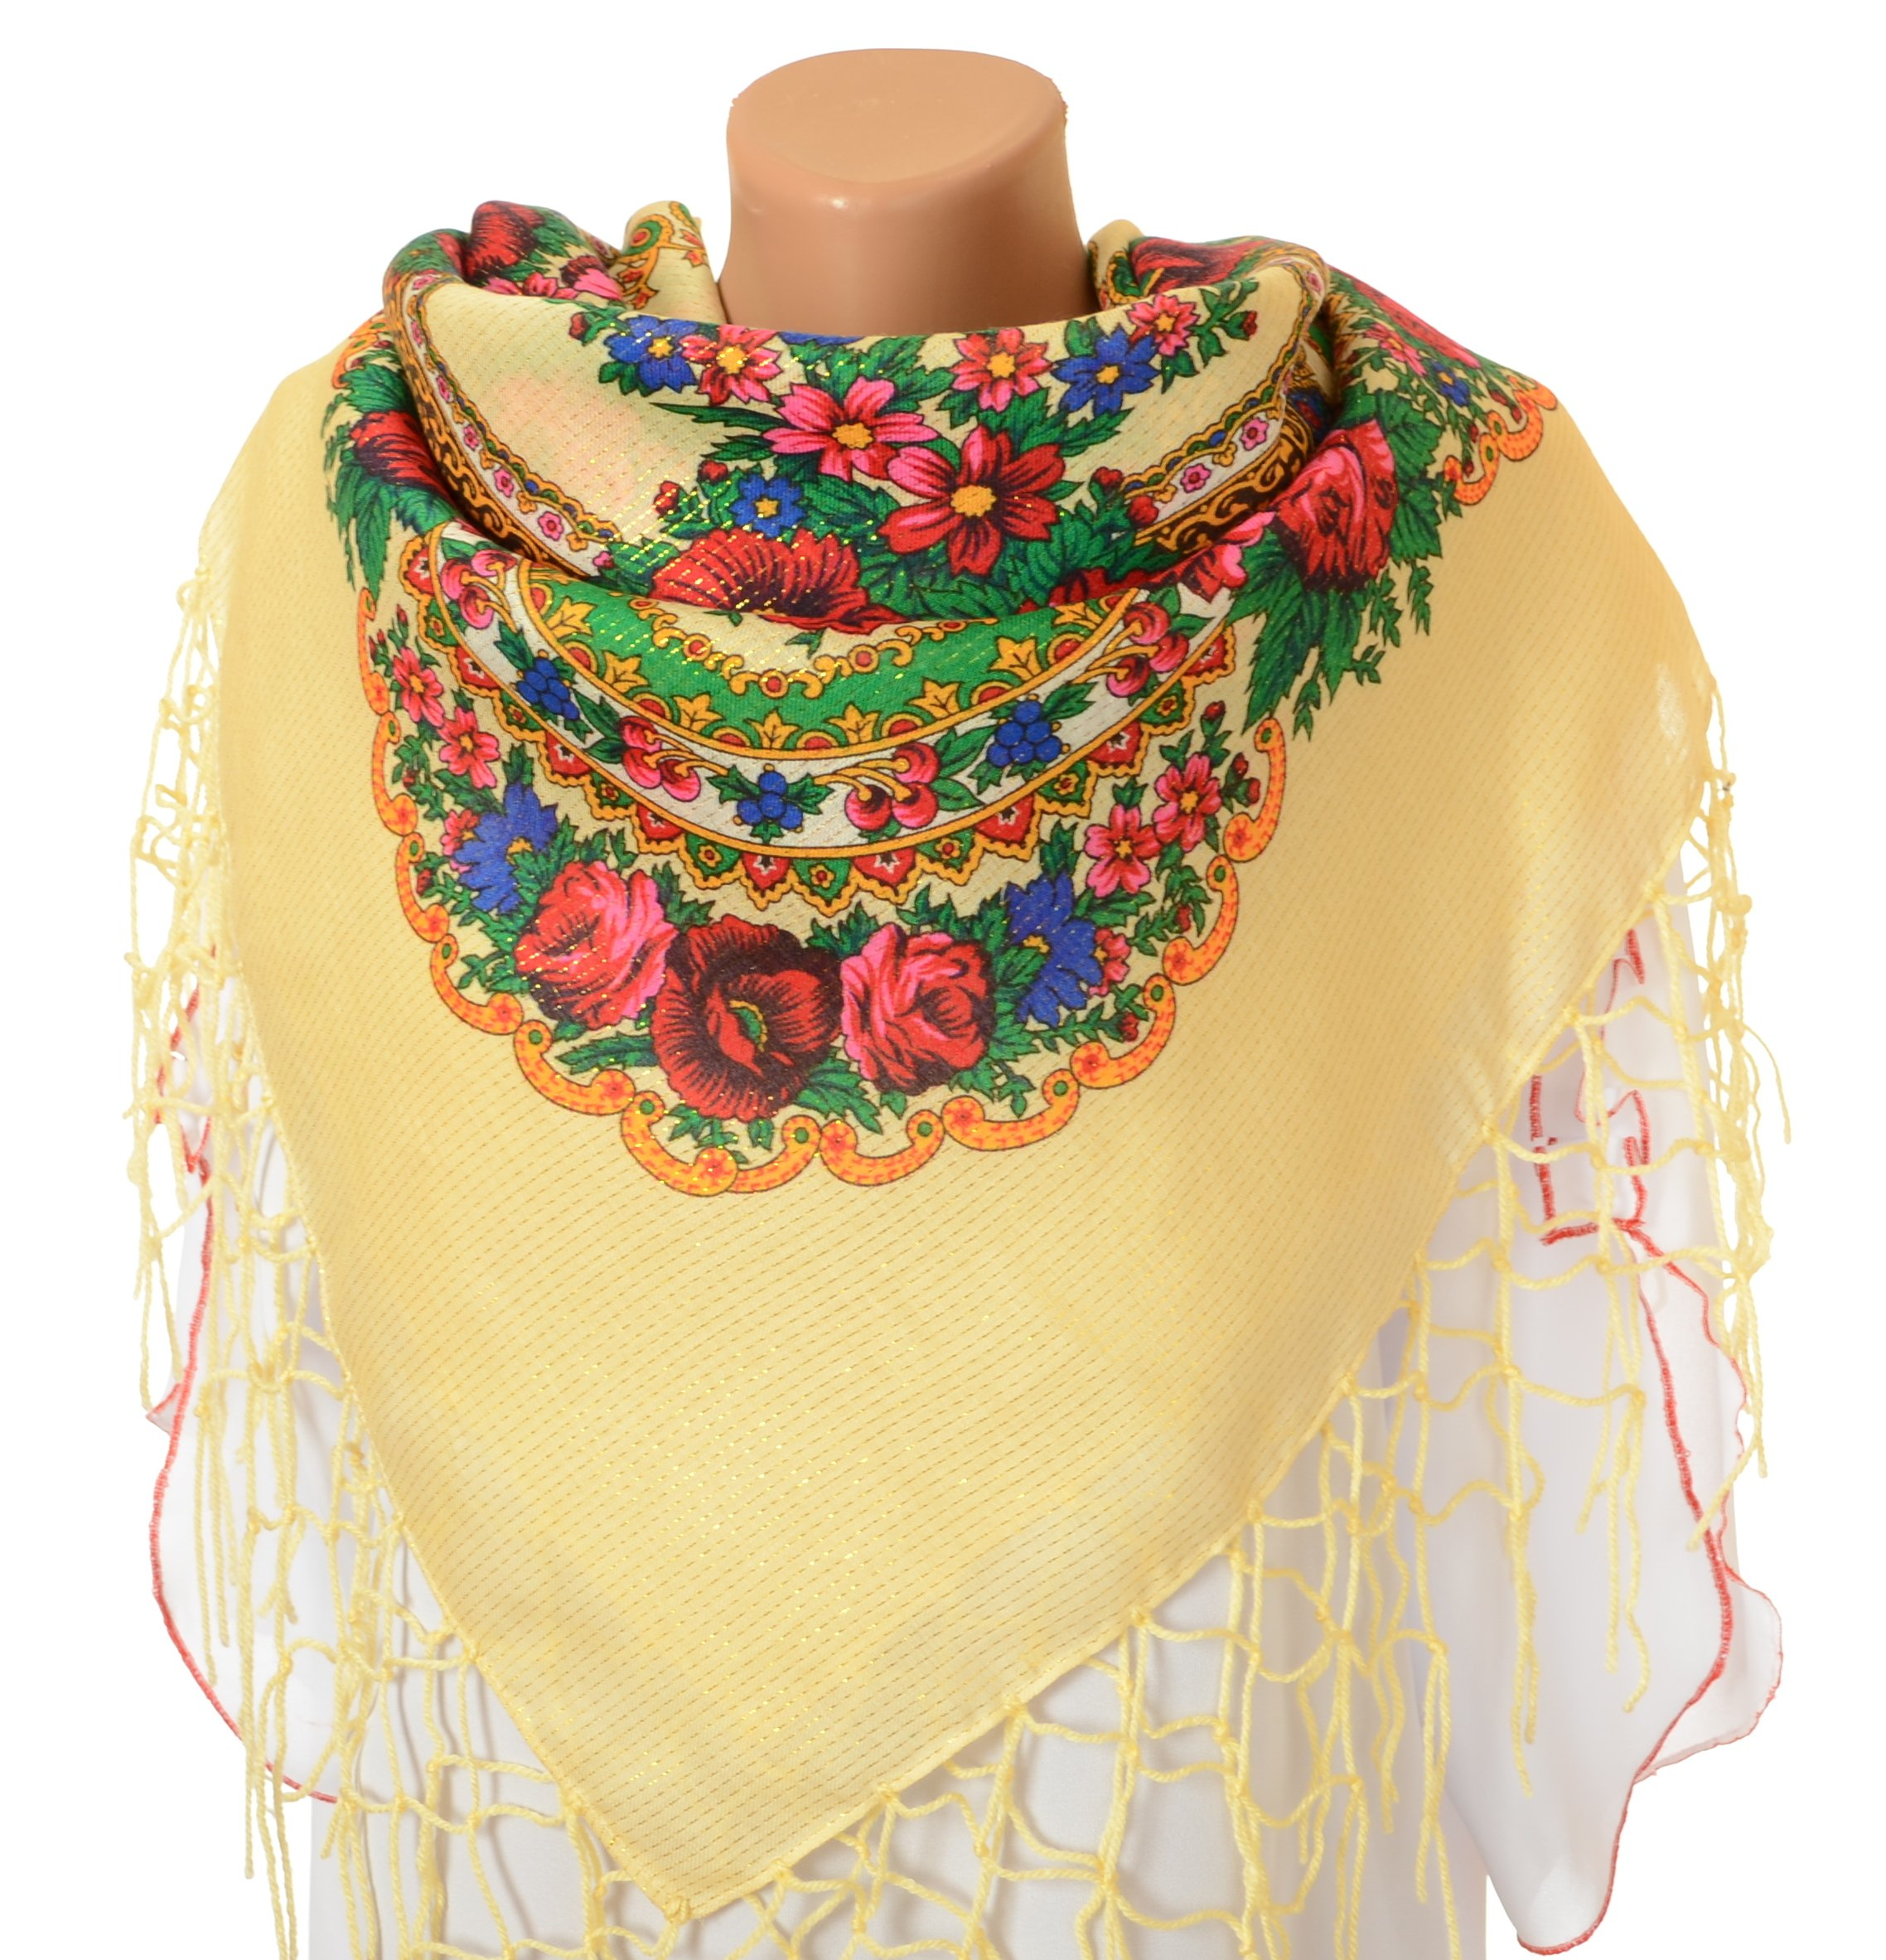 Scarf Wrap, Floral Shawl for Women, Traditional Ukrainian Polish Russian Style Neck Scarf, Fringed Vintage Head Scarf, A Thoughtful Birthday, Anniversary or Mother's Day Gift, 59 X 59 Inches by M&K Apparel